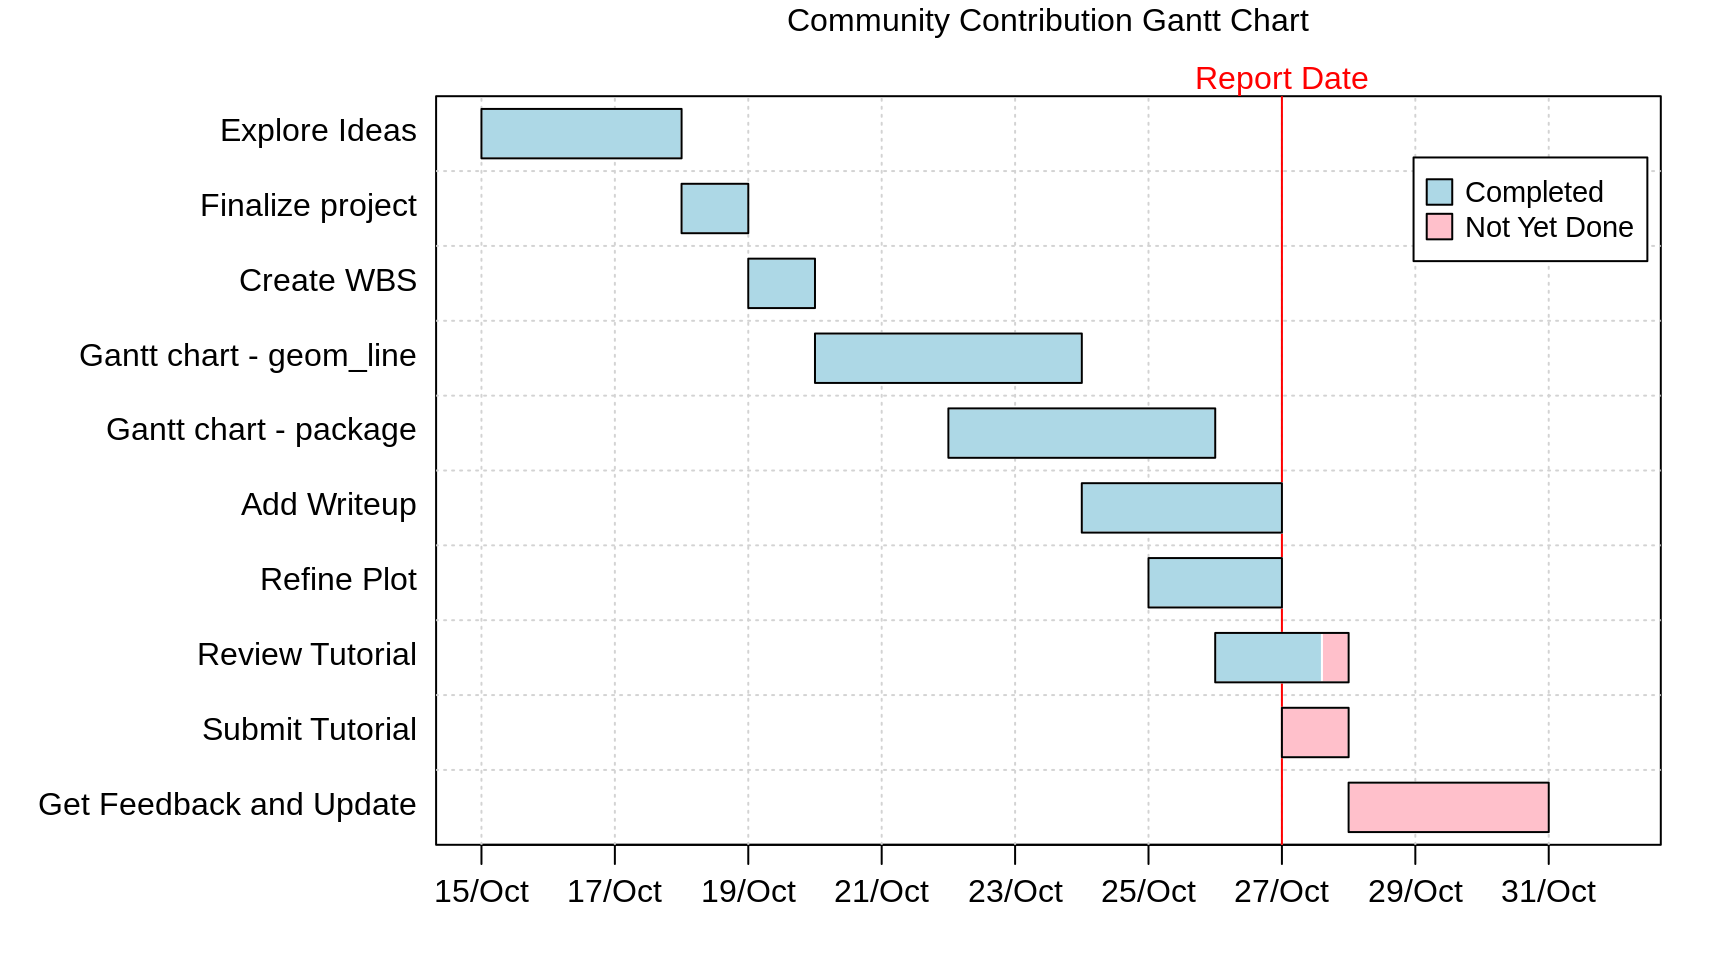 Chapter 12 Gantt Charts Community Contributions For Edav Fall 2019